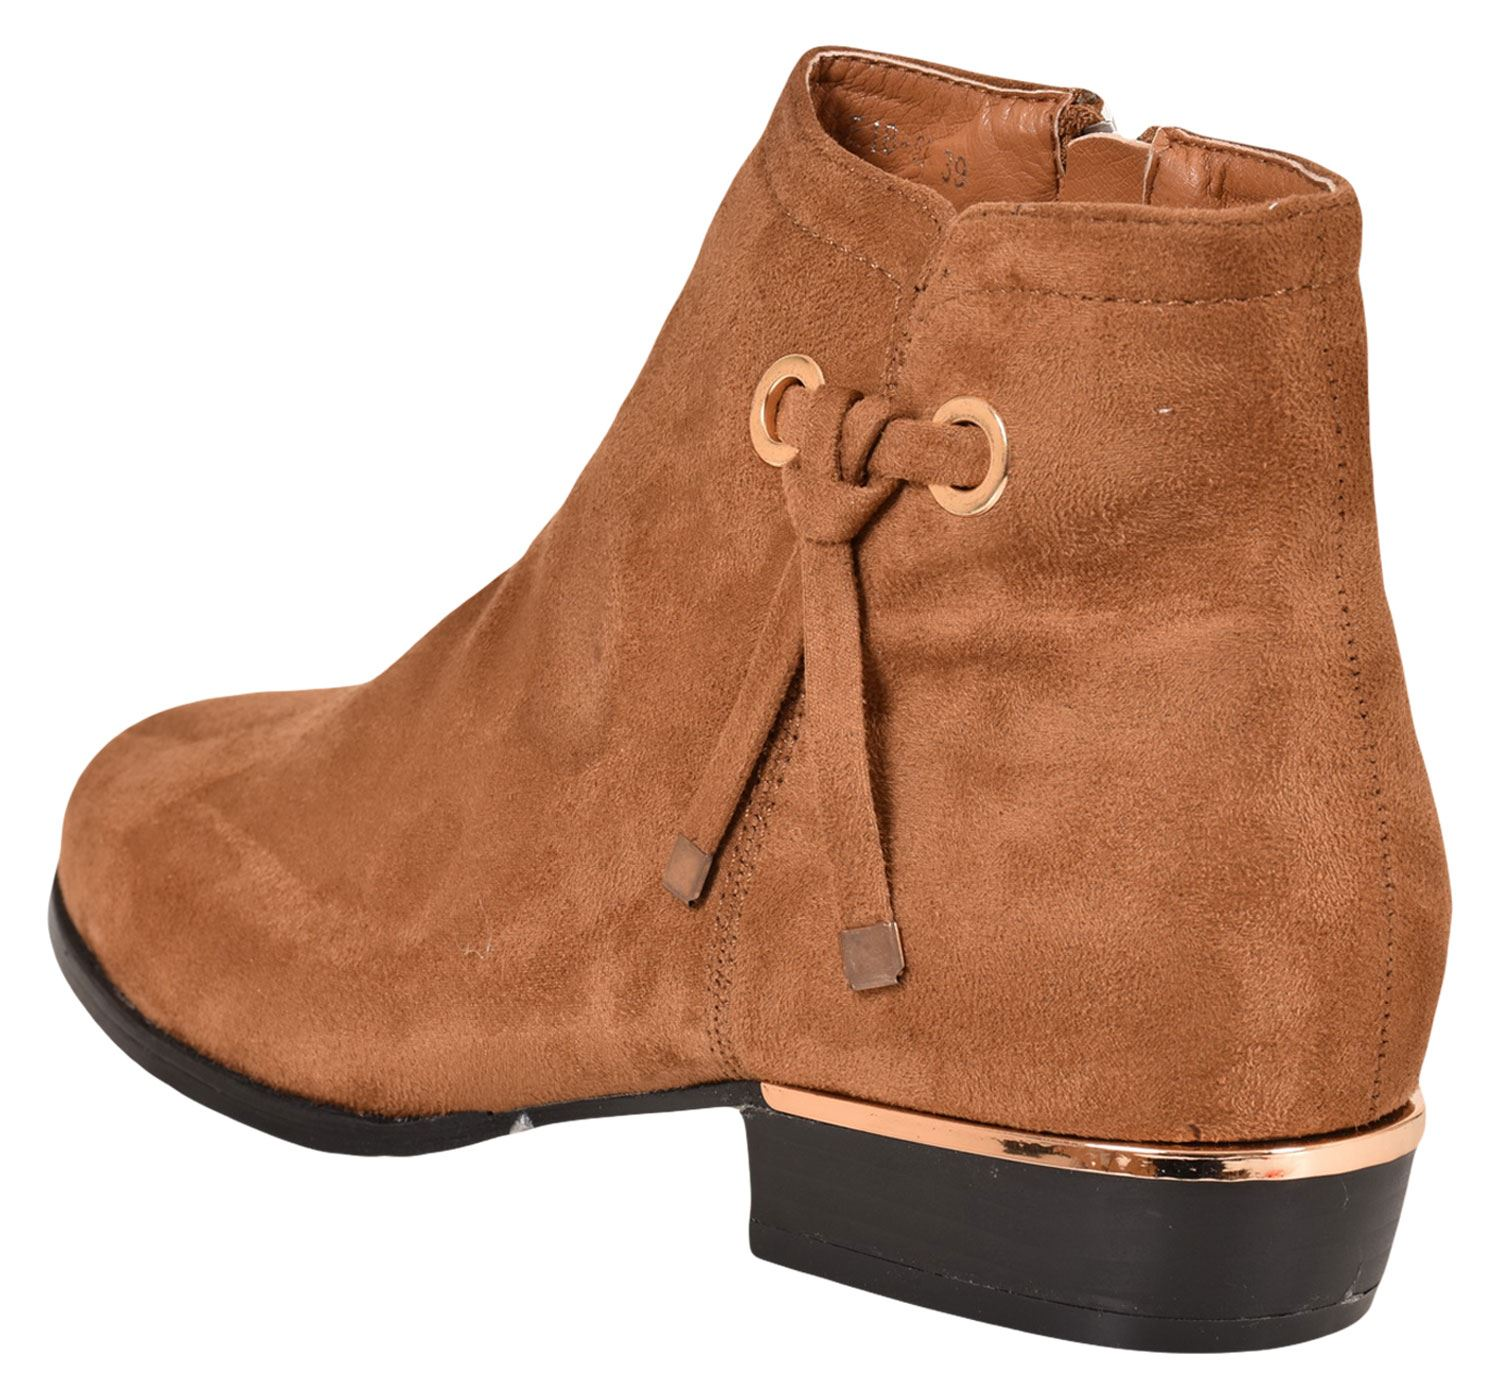 New-Women-Chelsea-Ankle-Boots-Winter-Block-Heel-Ladies-Biker-Style-Boots thumbnail 39